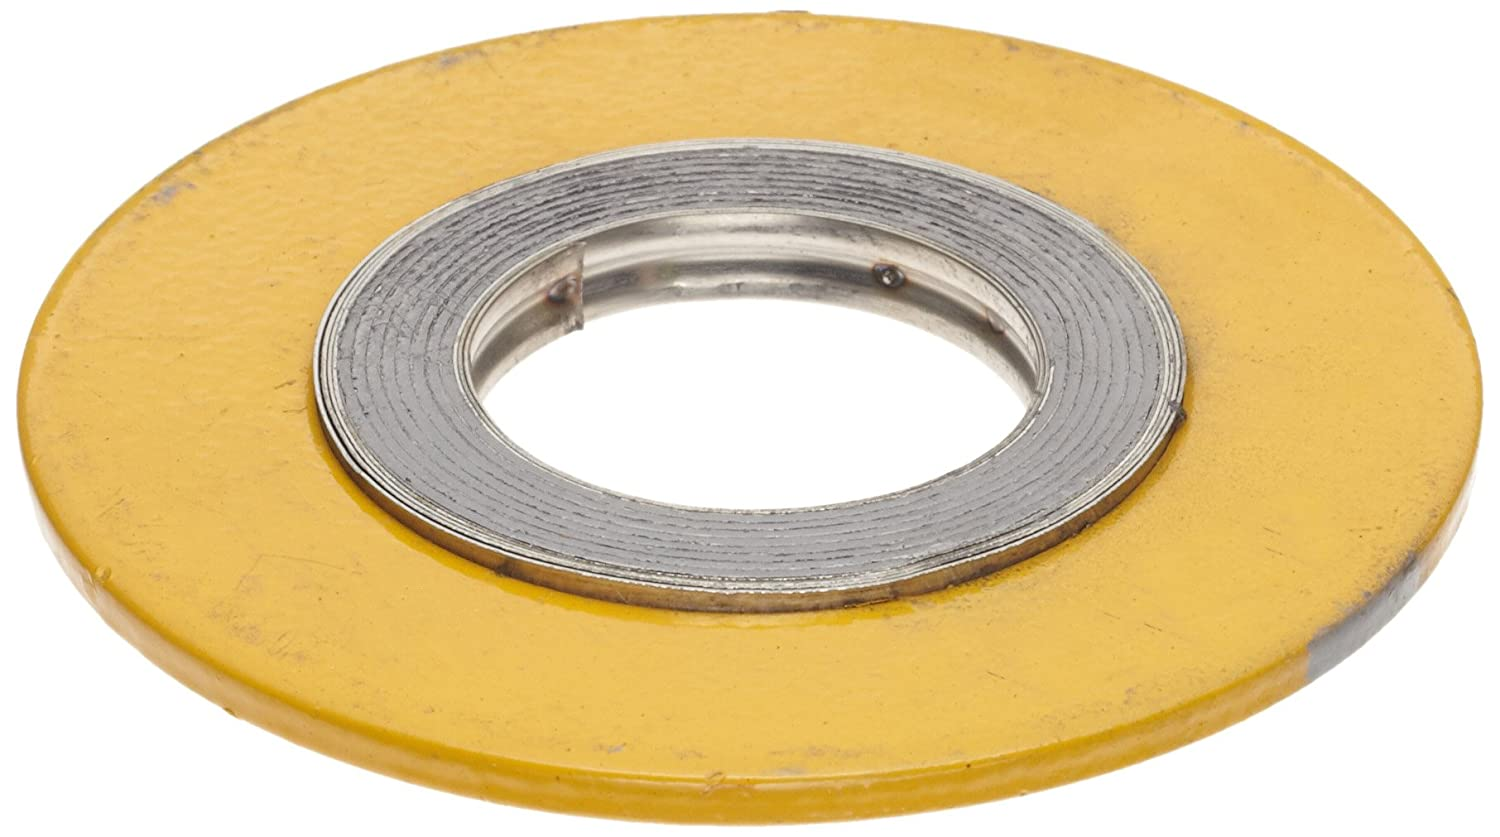 Metal Reinforced Pure Graphite Flange Gasket, Ring, Fits Class 300 Flange, 1-1/2